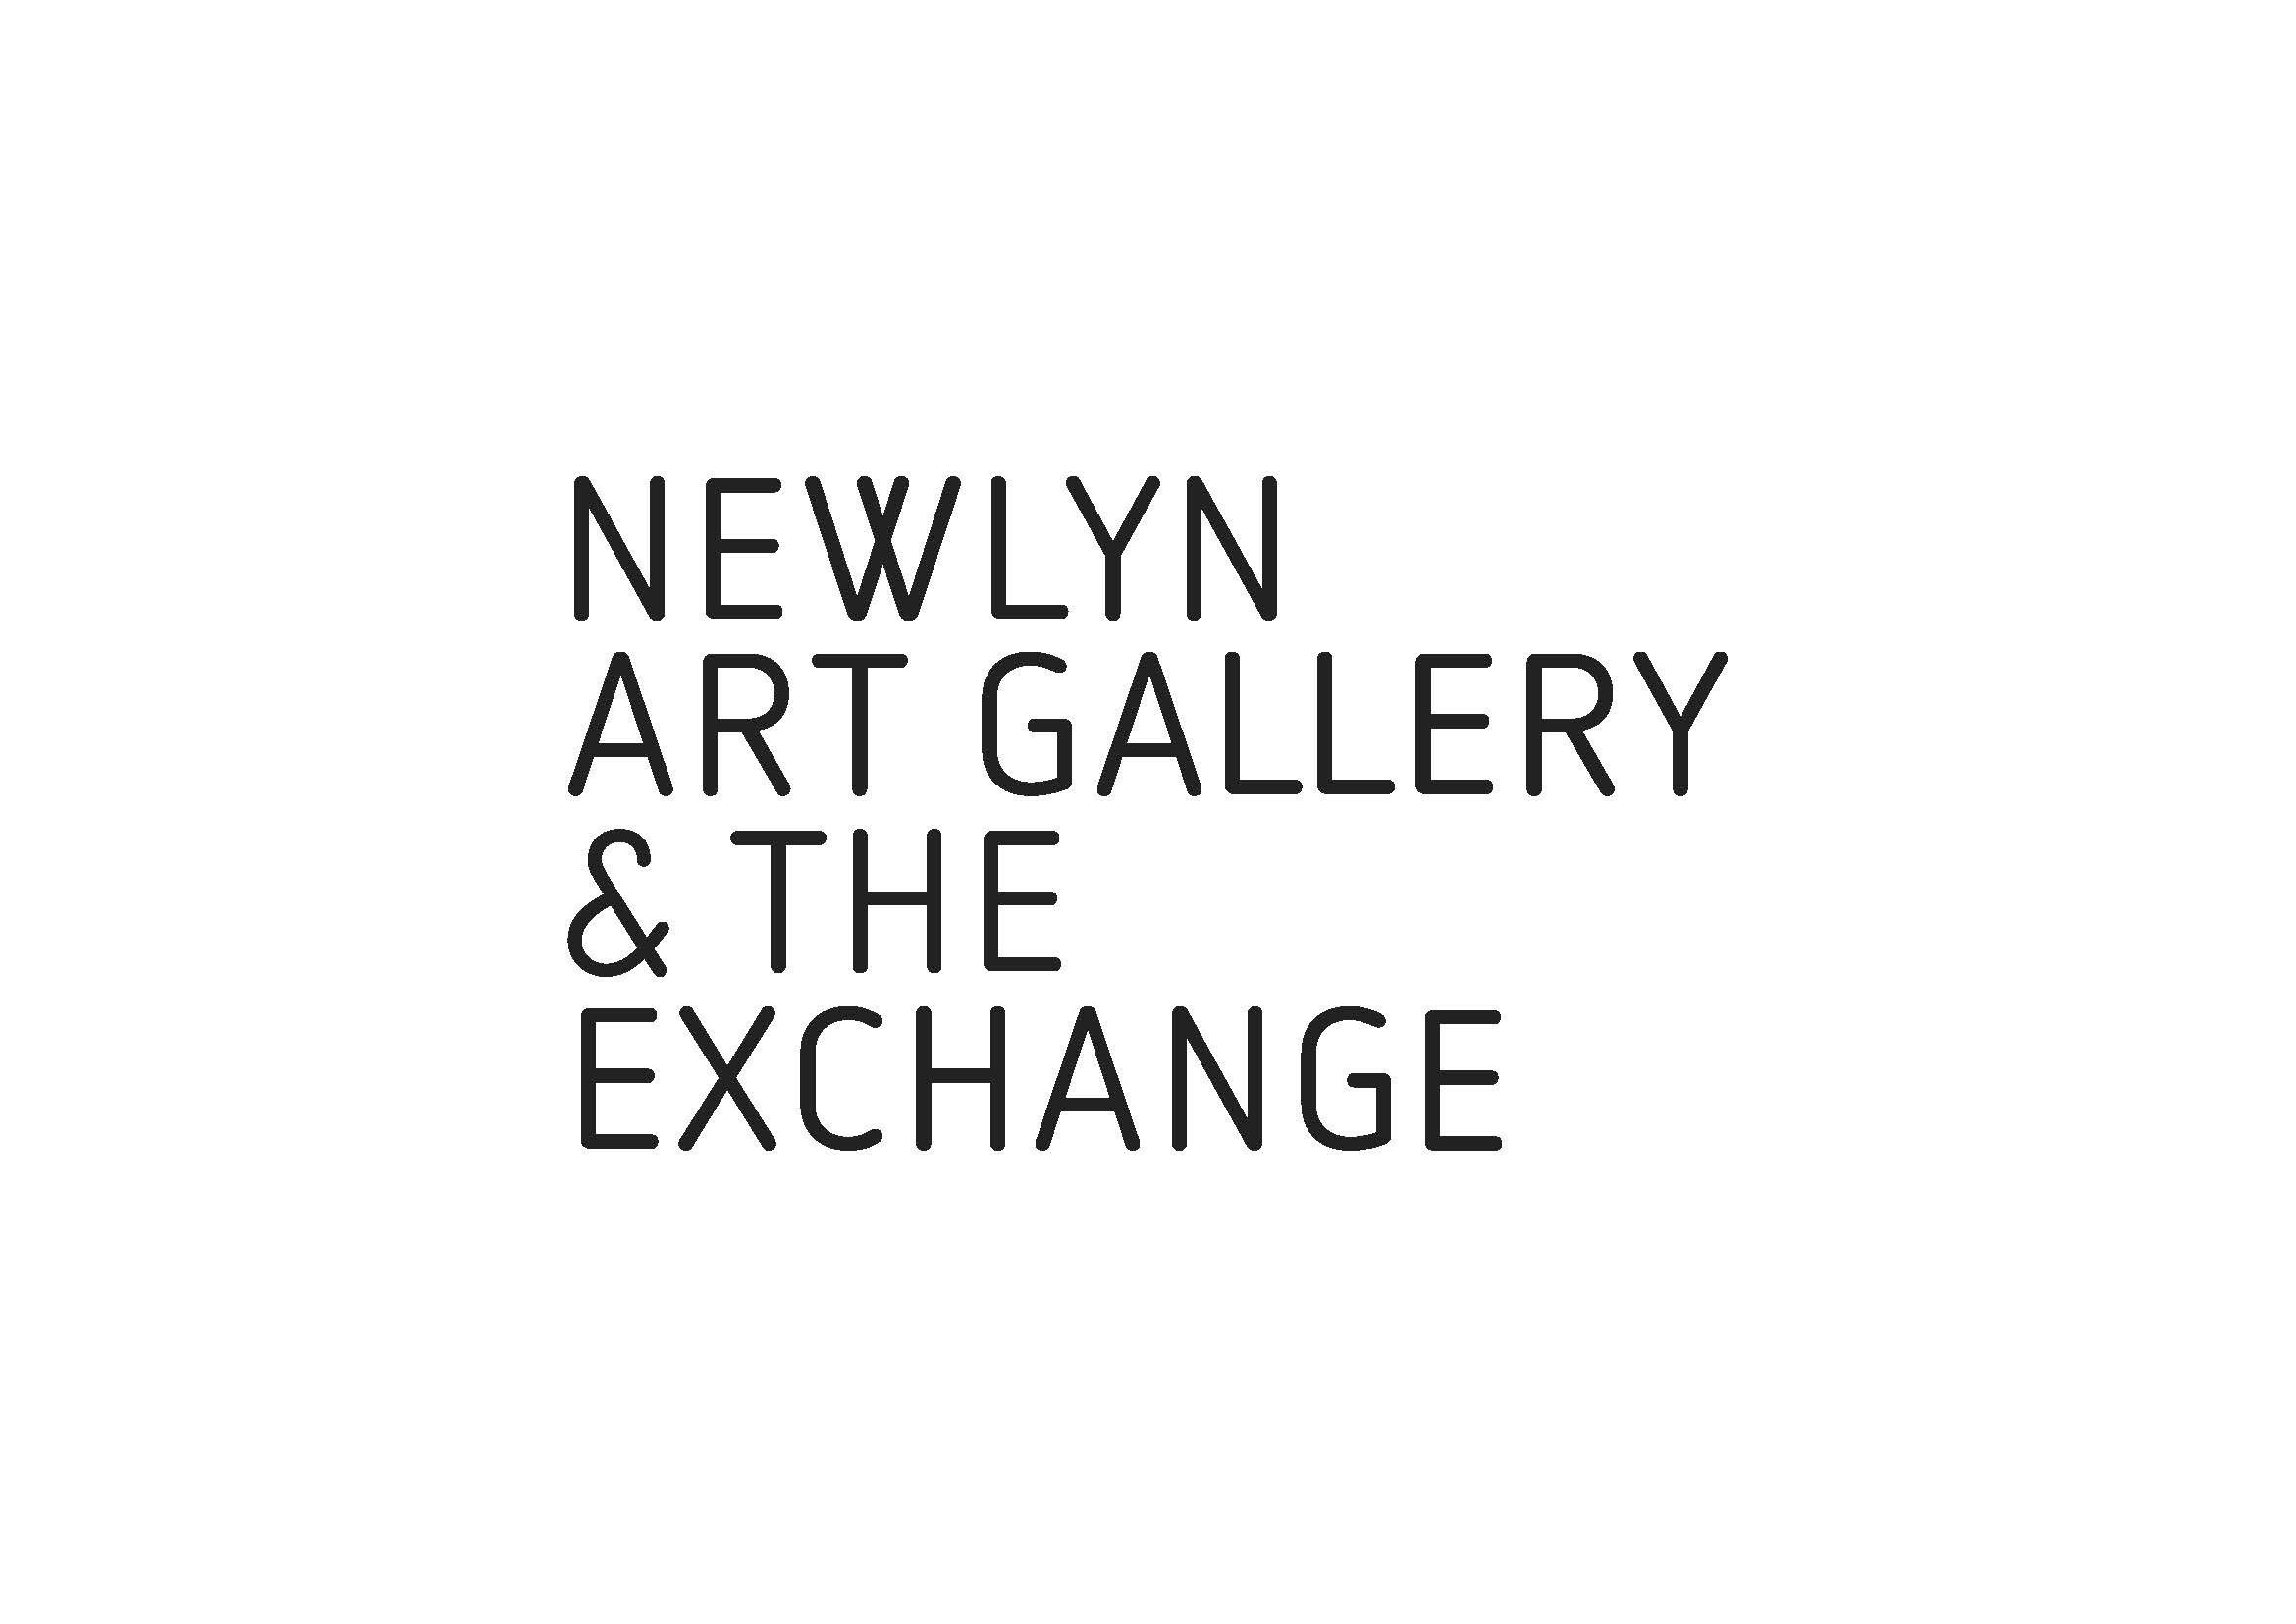 Newlyn Art Gallery